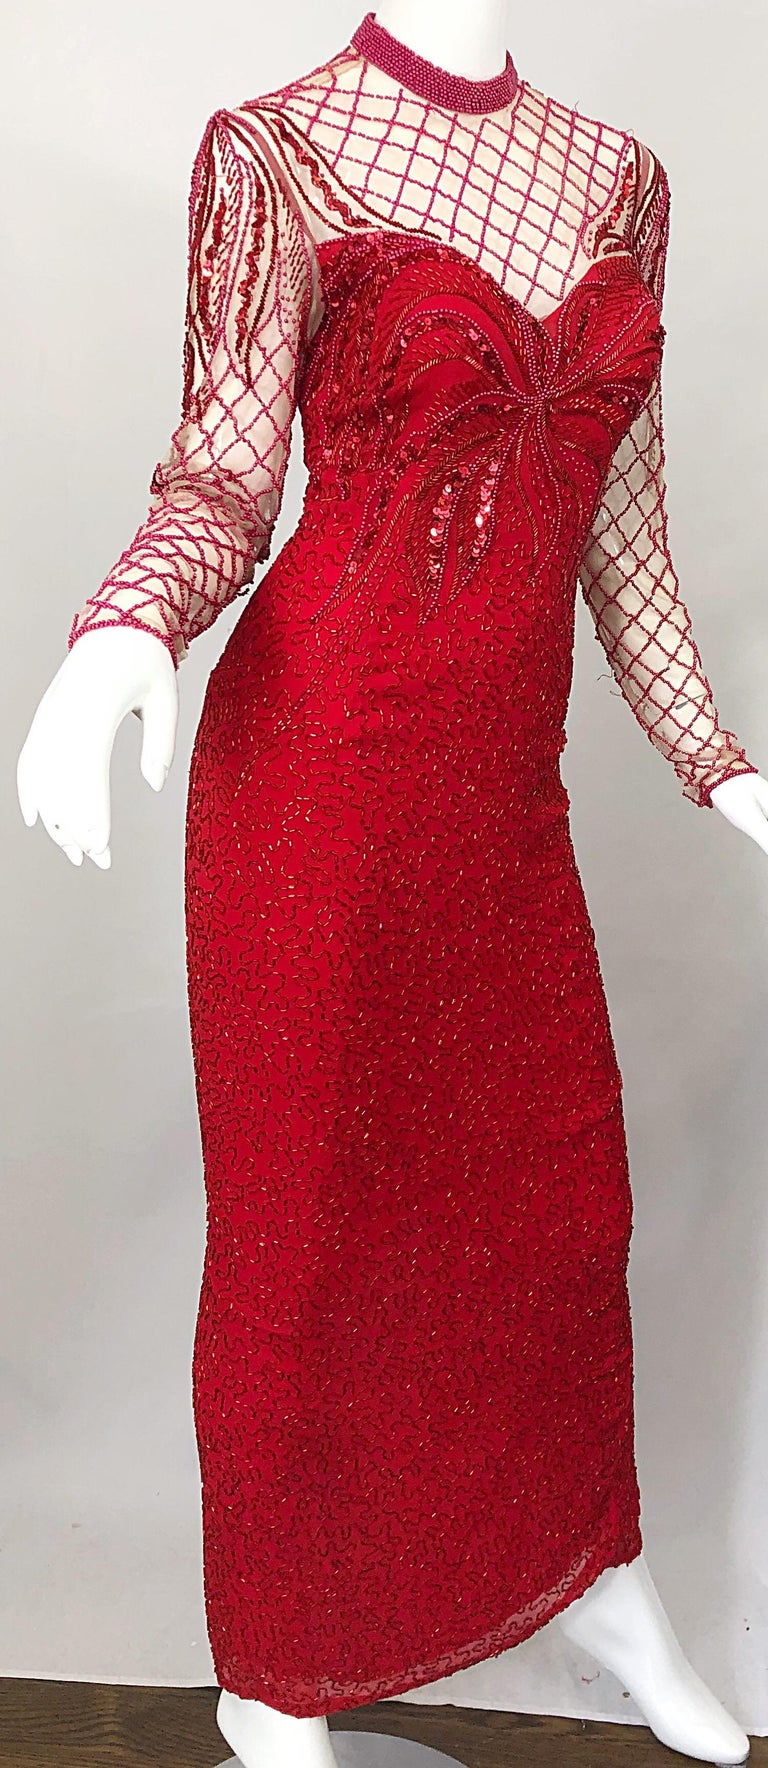 Vintage Oleg Cassini 1990s Lipstick Red Beaded Silk Chiffon 90s Evening Gown For Sale 3